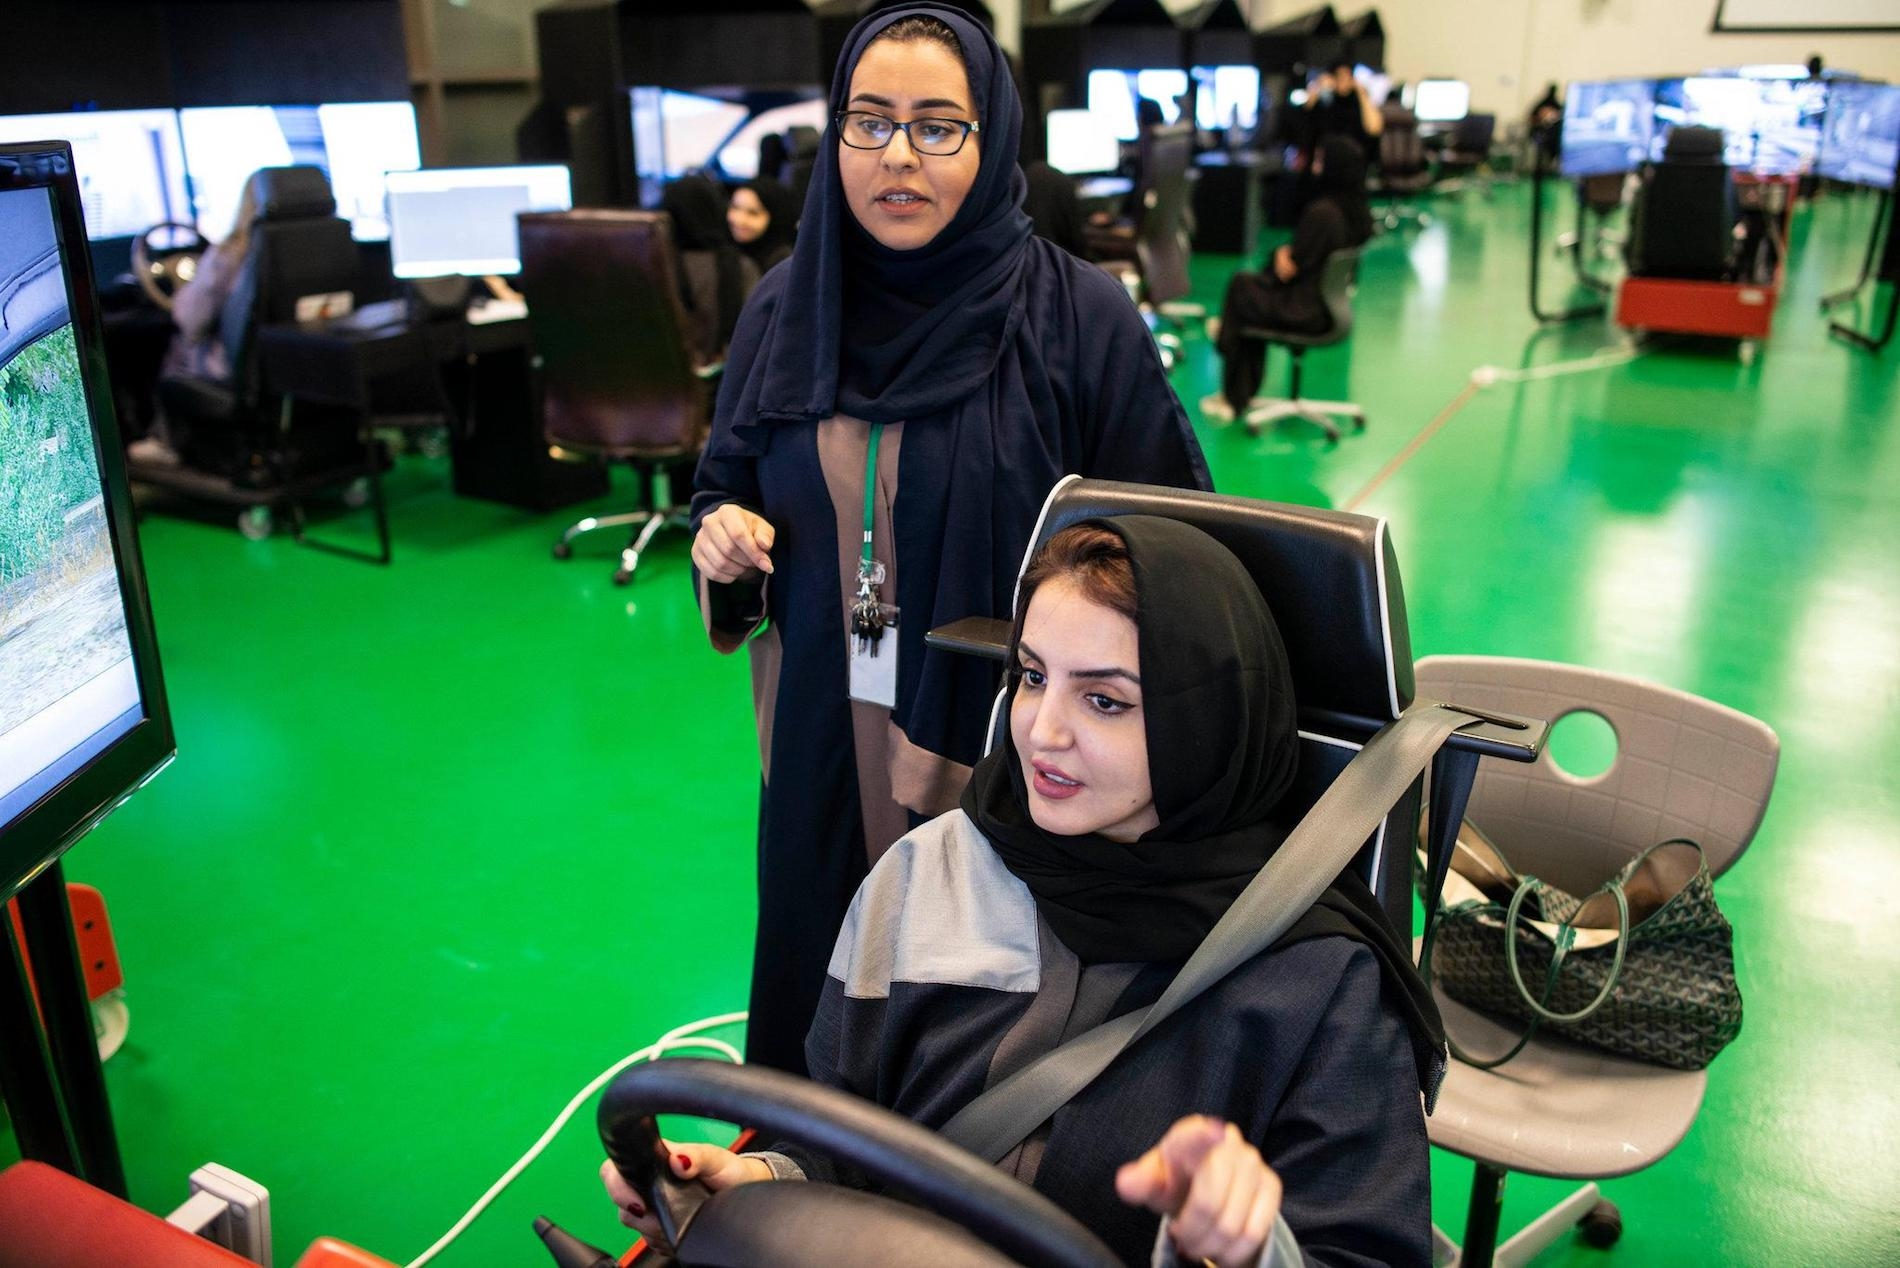 A woman teaches another woman how to drive on a virtual machine.